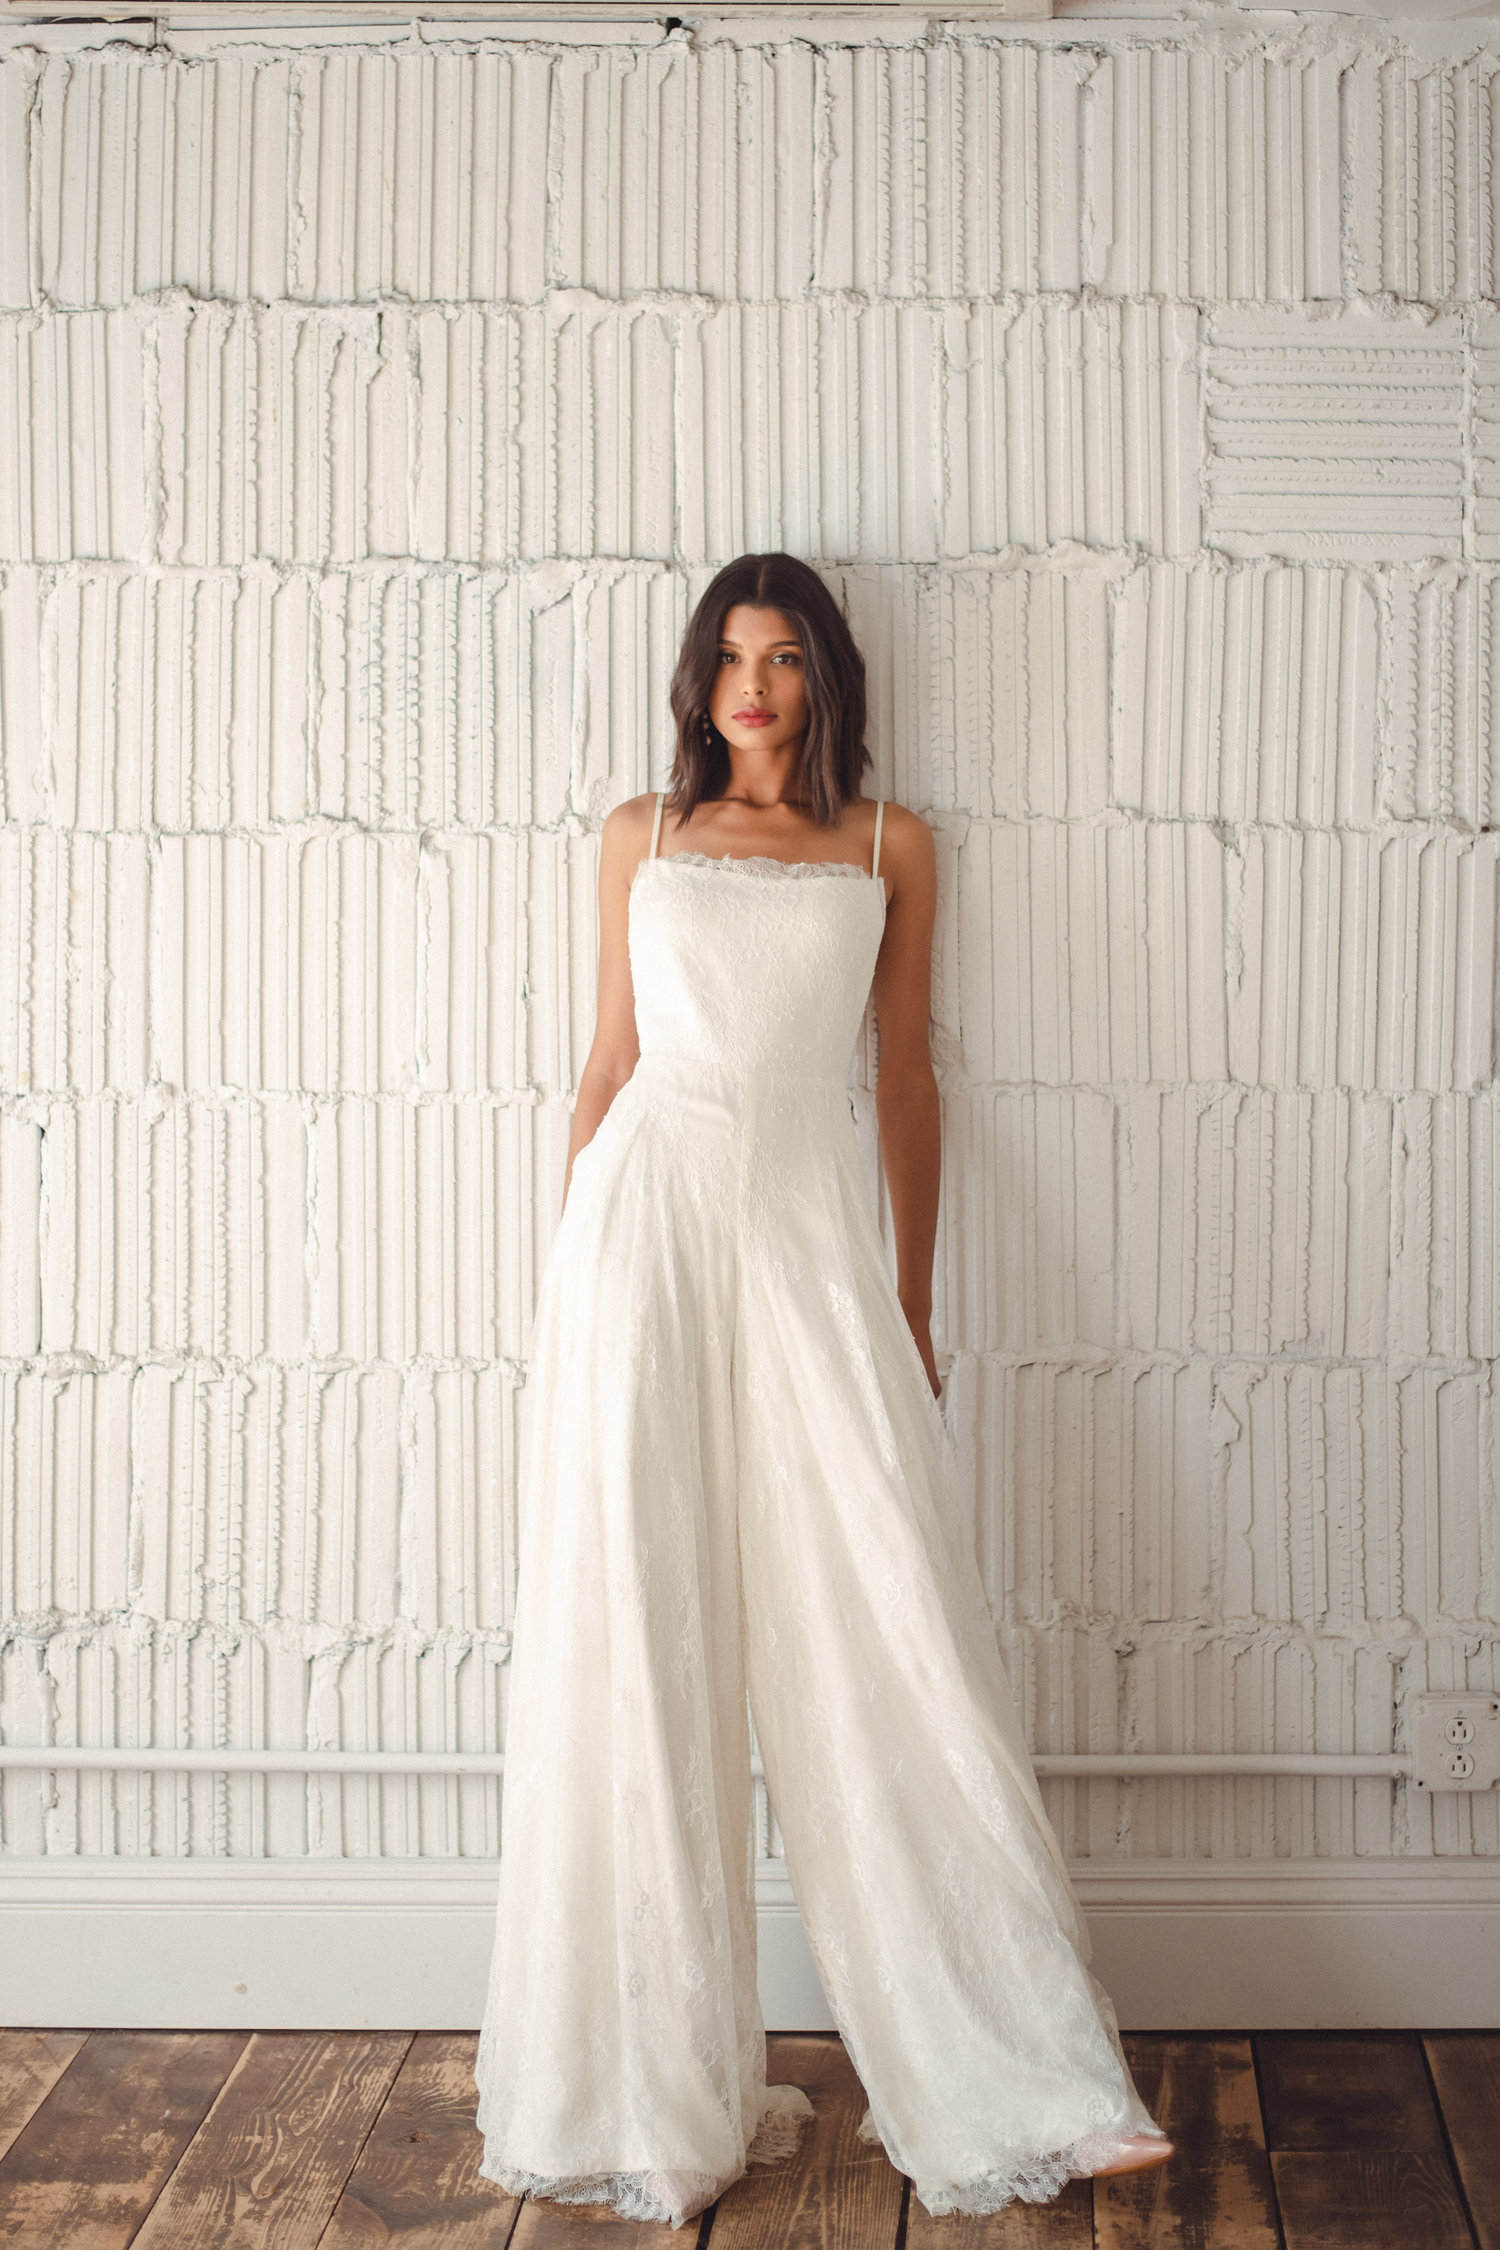 The Up and Coming Trend: Bridal Jumpsuits - Jumpsuit from Rent the Runway - #weddings #bridal #jumpsuit #bridaljumpsuit